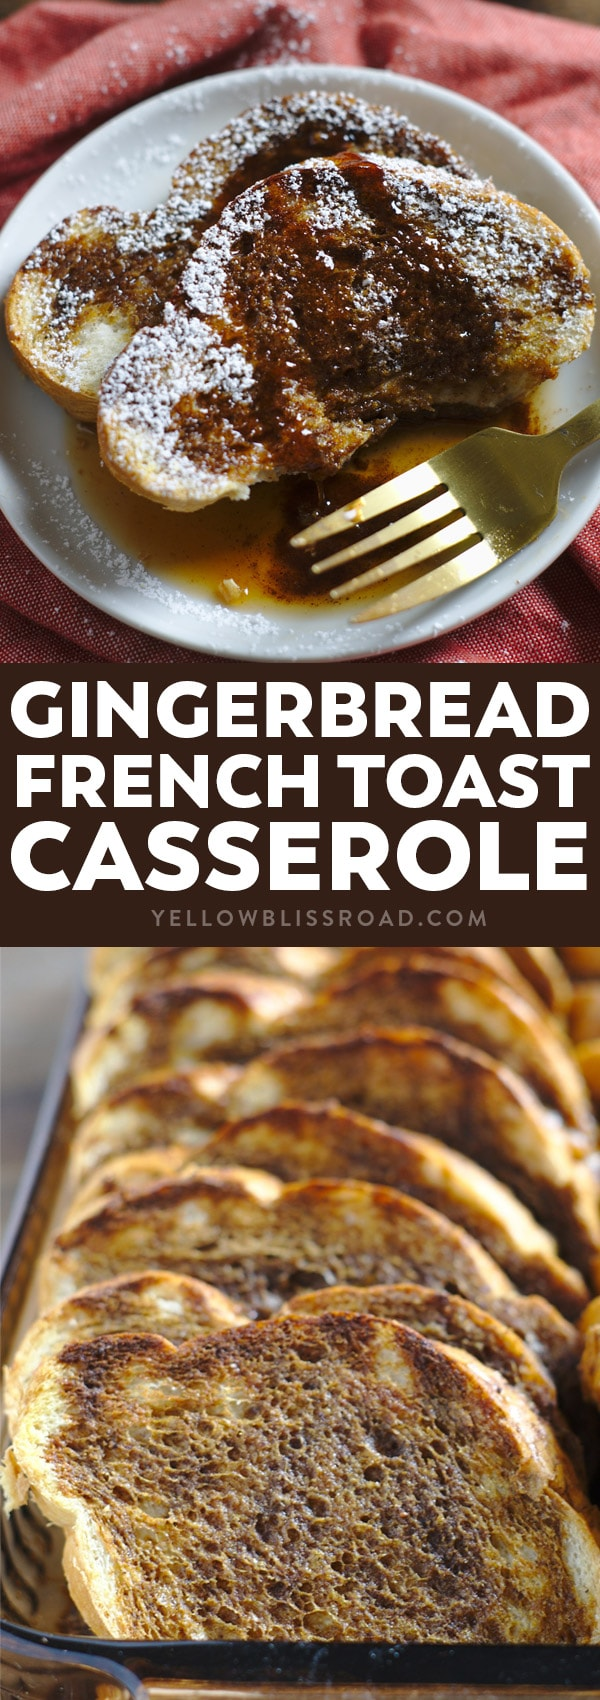 Social media image of Gingerbread French Toast Casserole